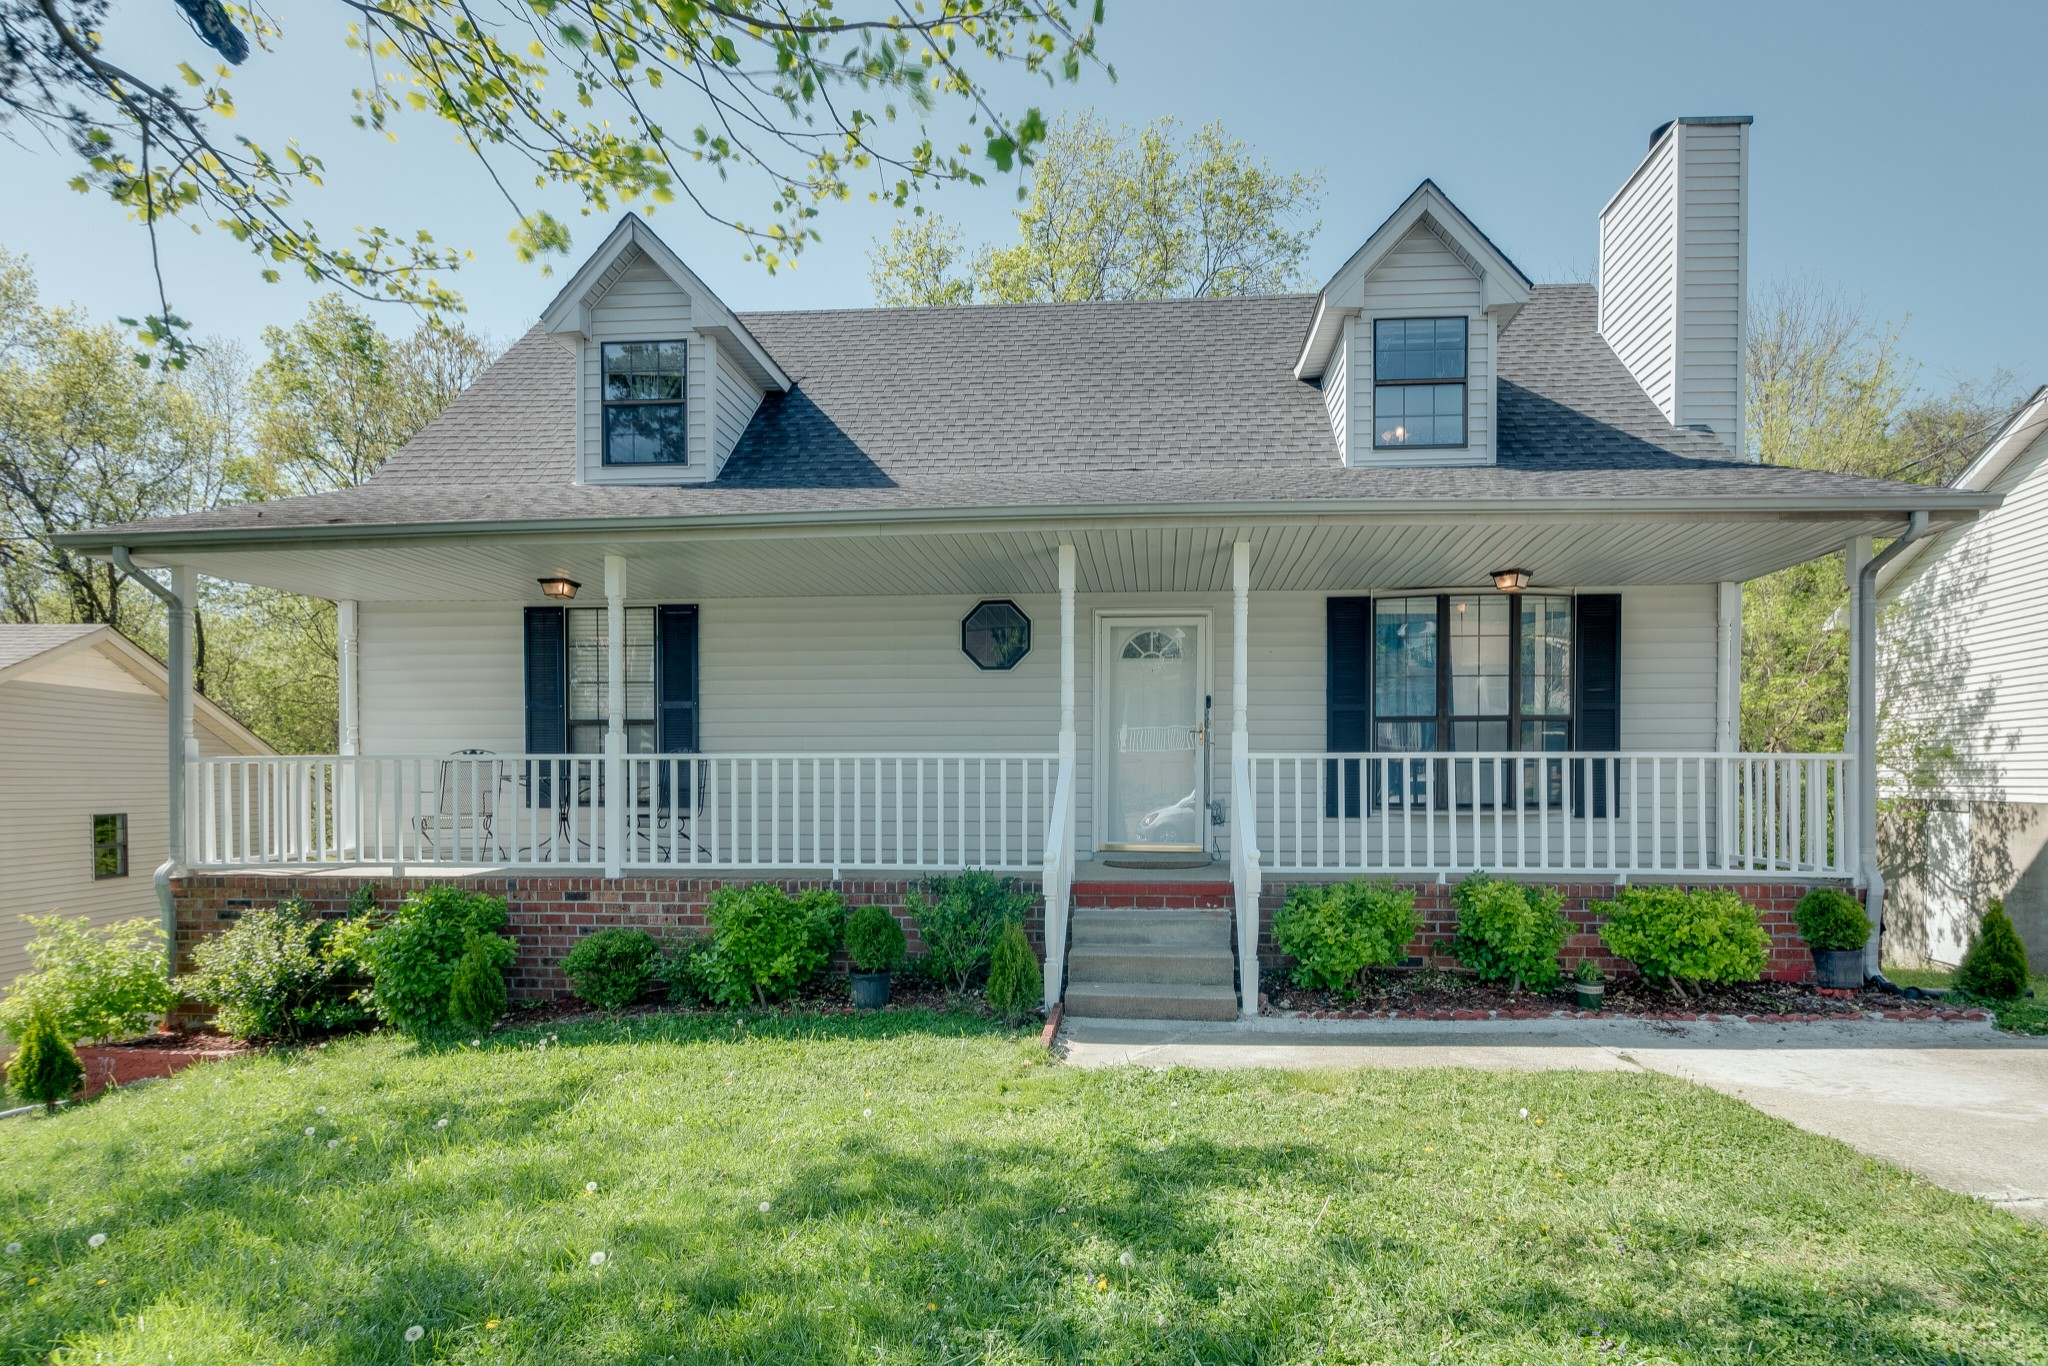 1404 Rice Hill Cir Property Photo - Antioch, TN real estate listing